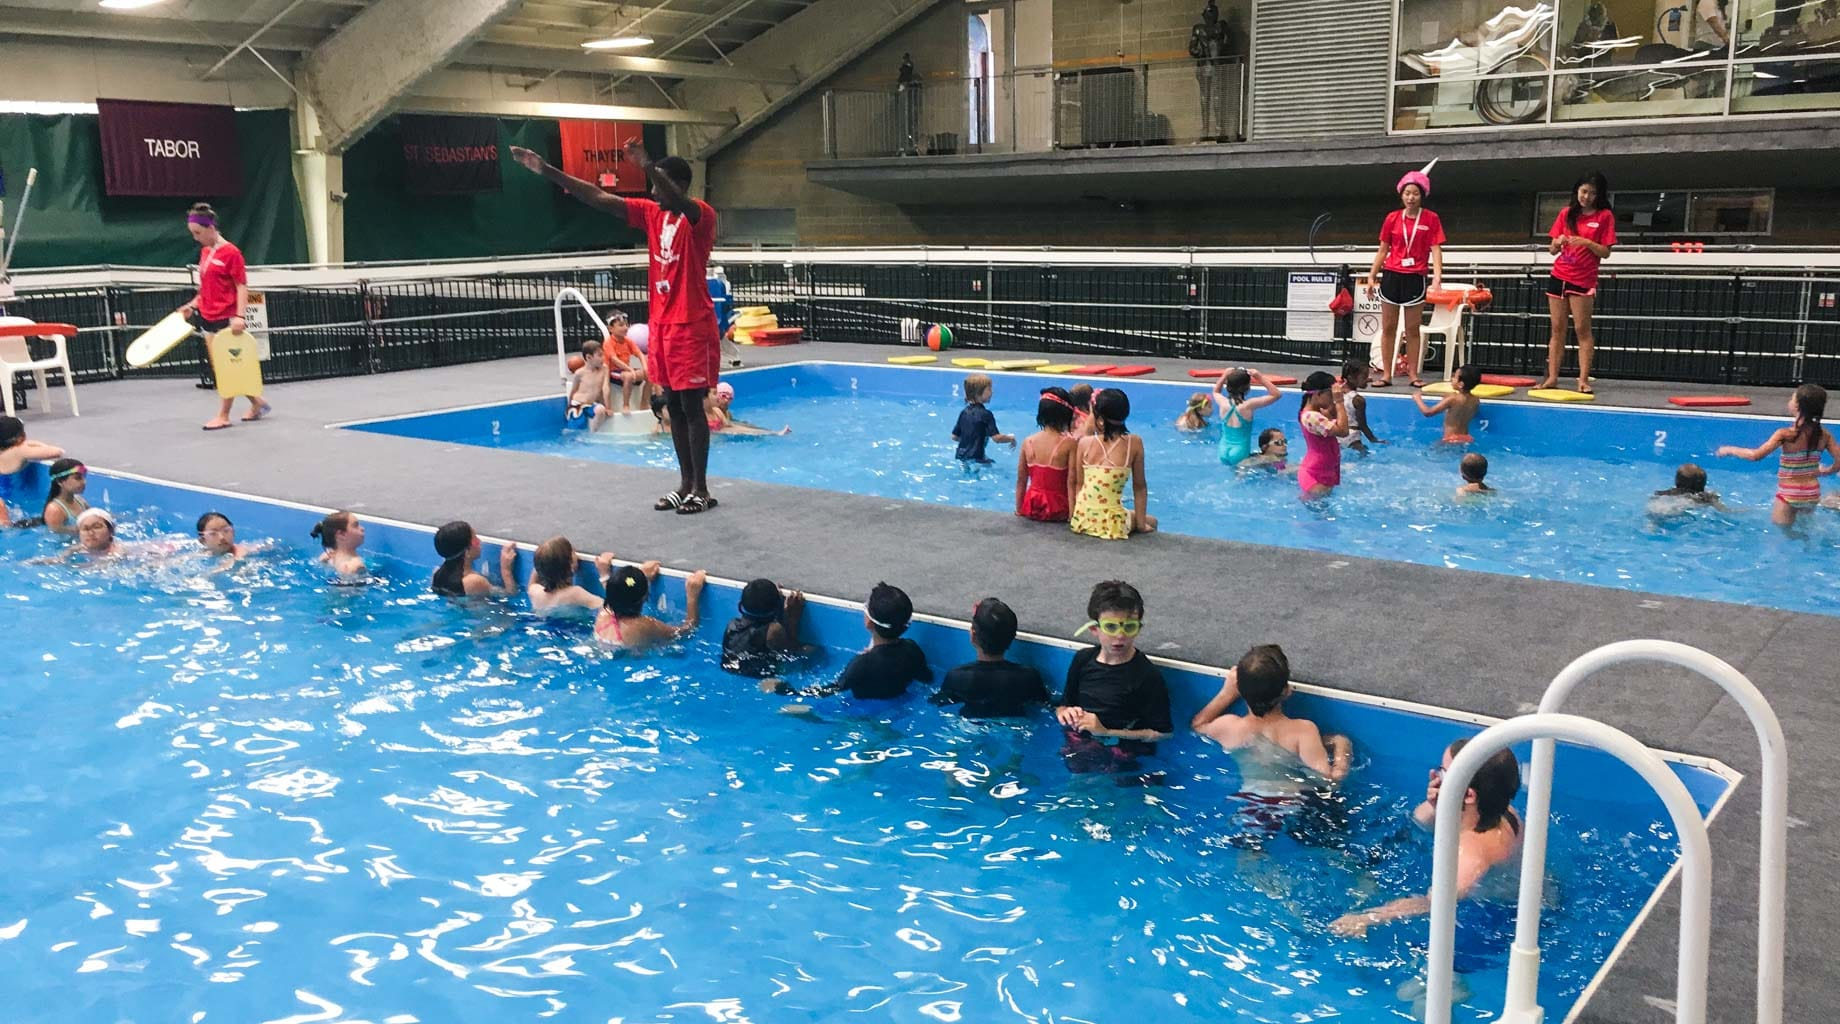 Lifeguards teaching campers how to swim